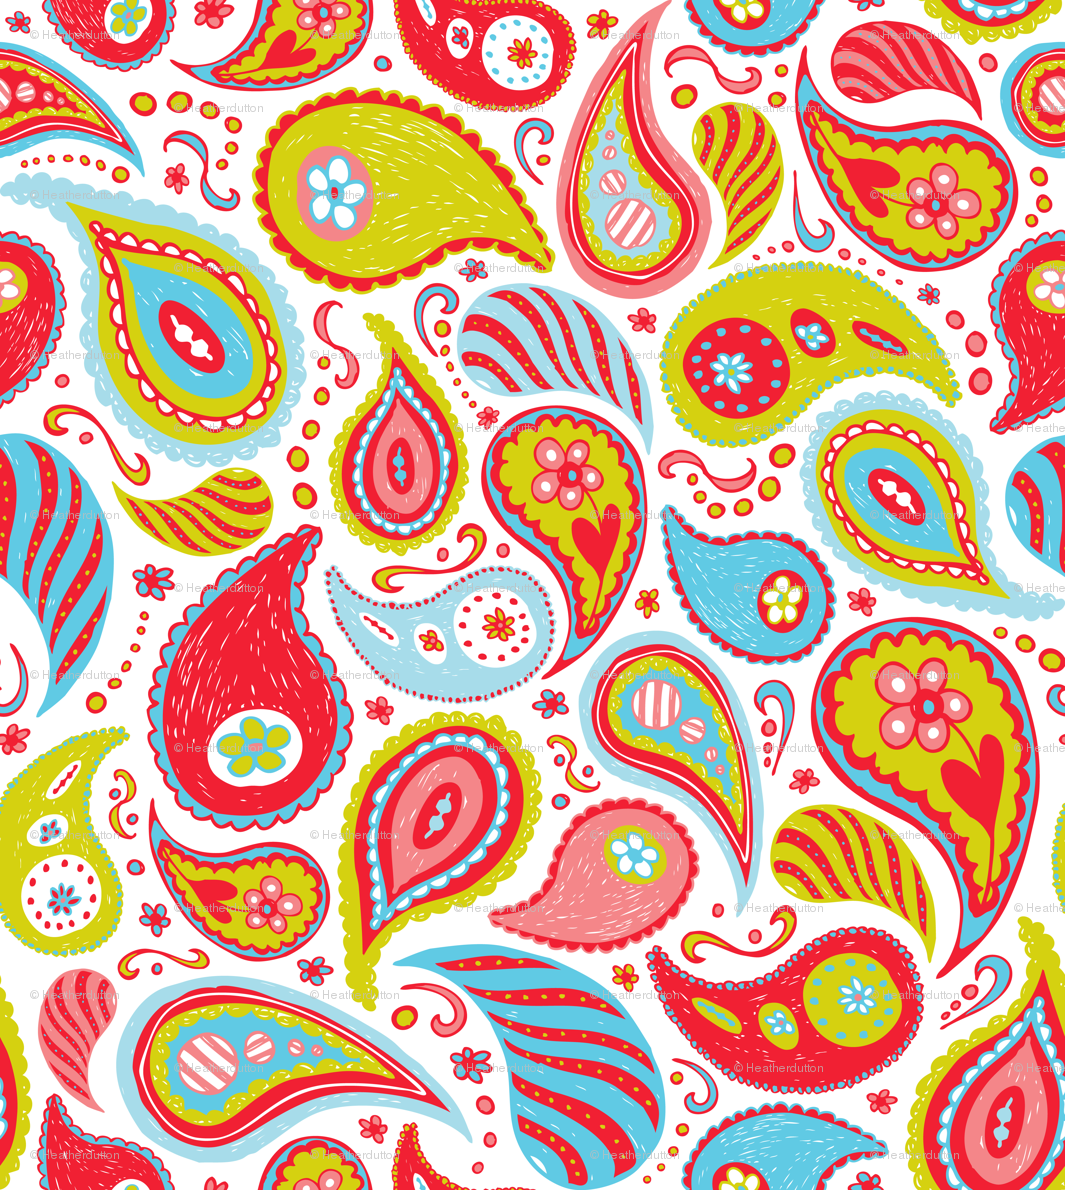 Paisley Wallpapers For Desktop V57 Collection Circuit Board Fabric Twoboos Spoonflower Pics 100 Quality Hd 1065x1190